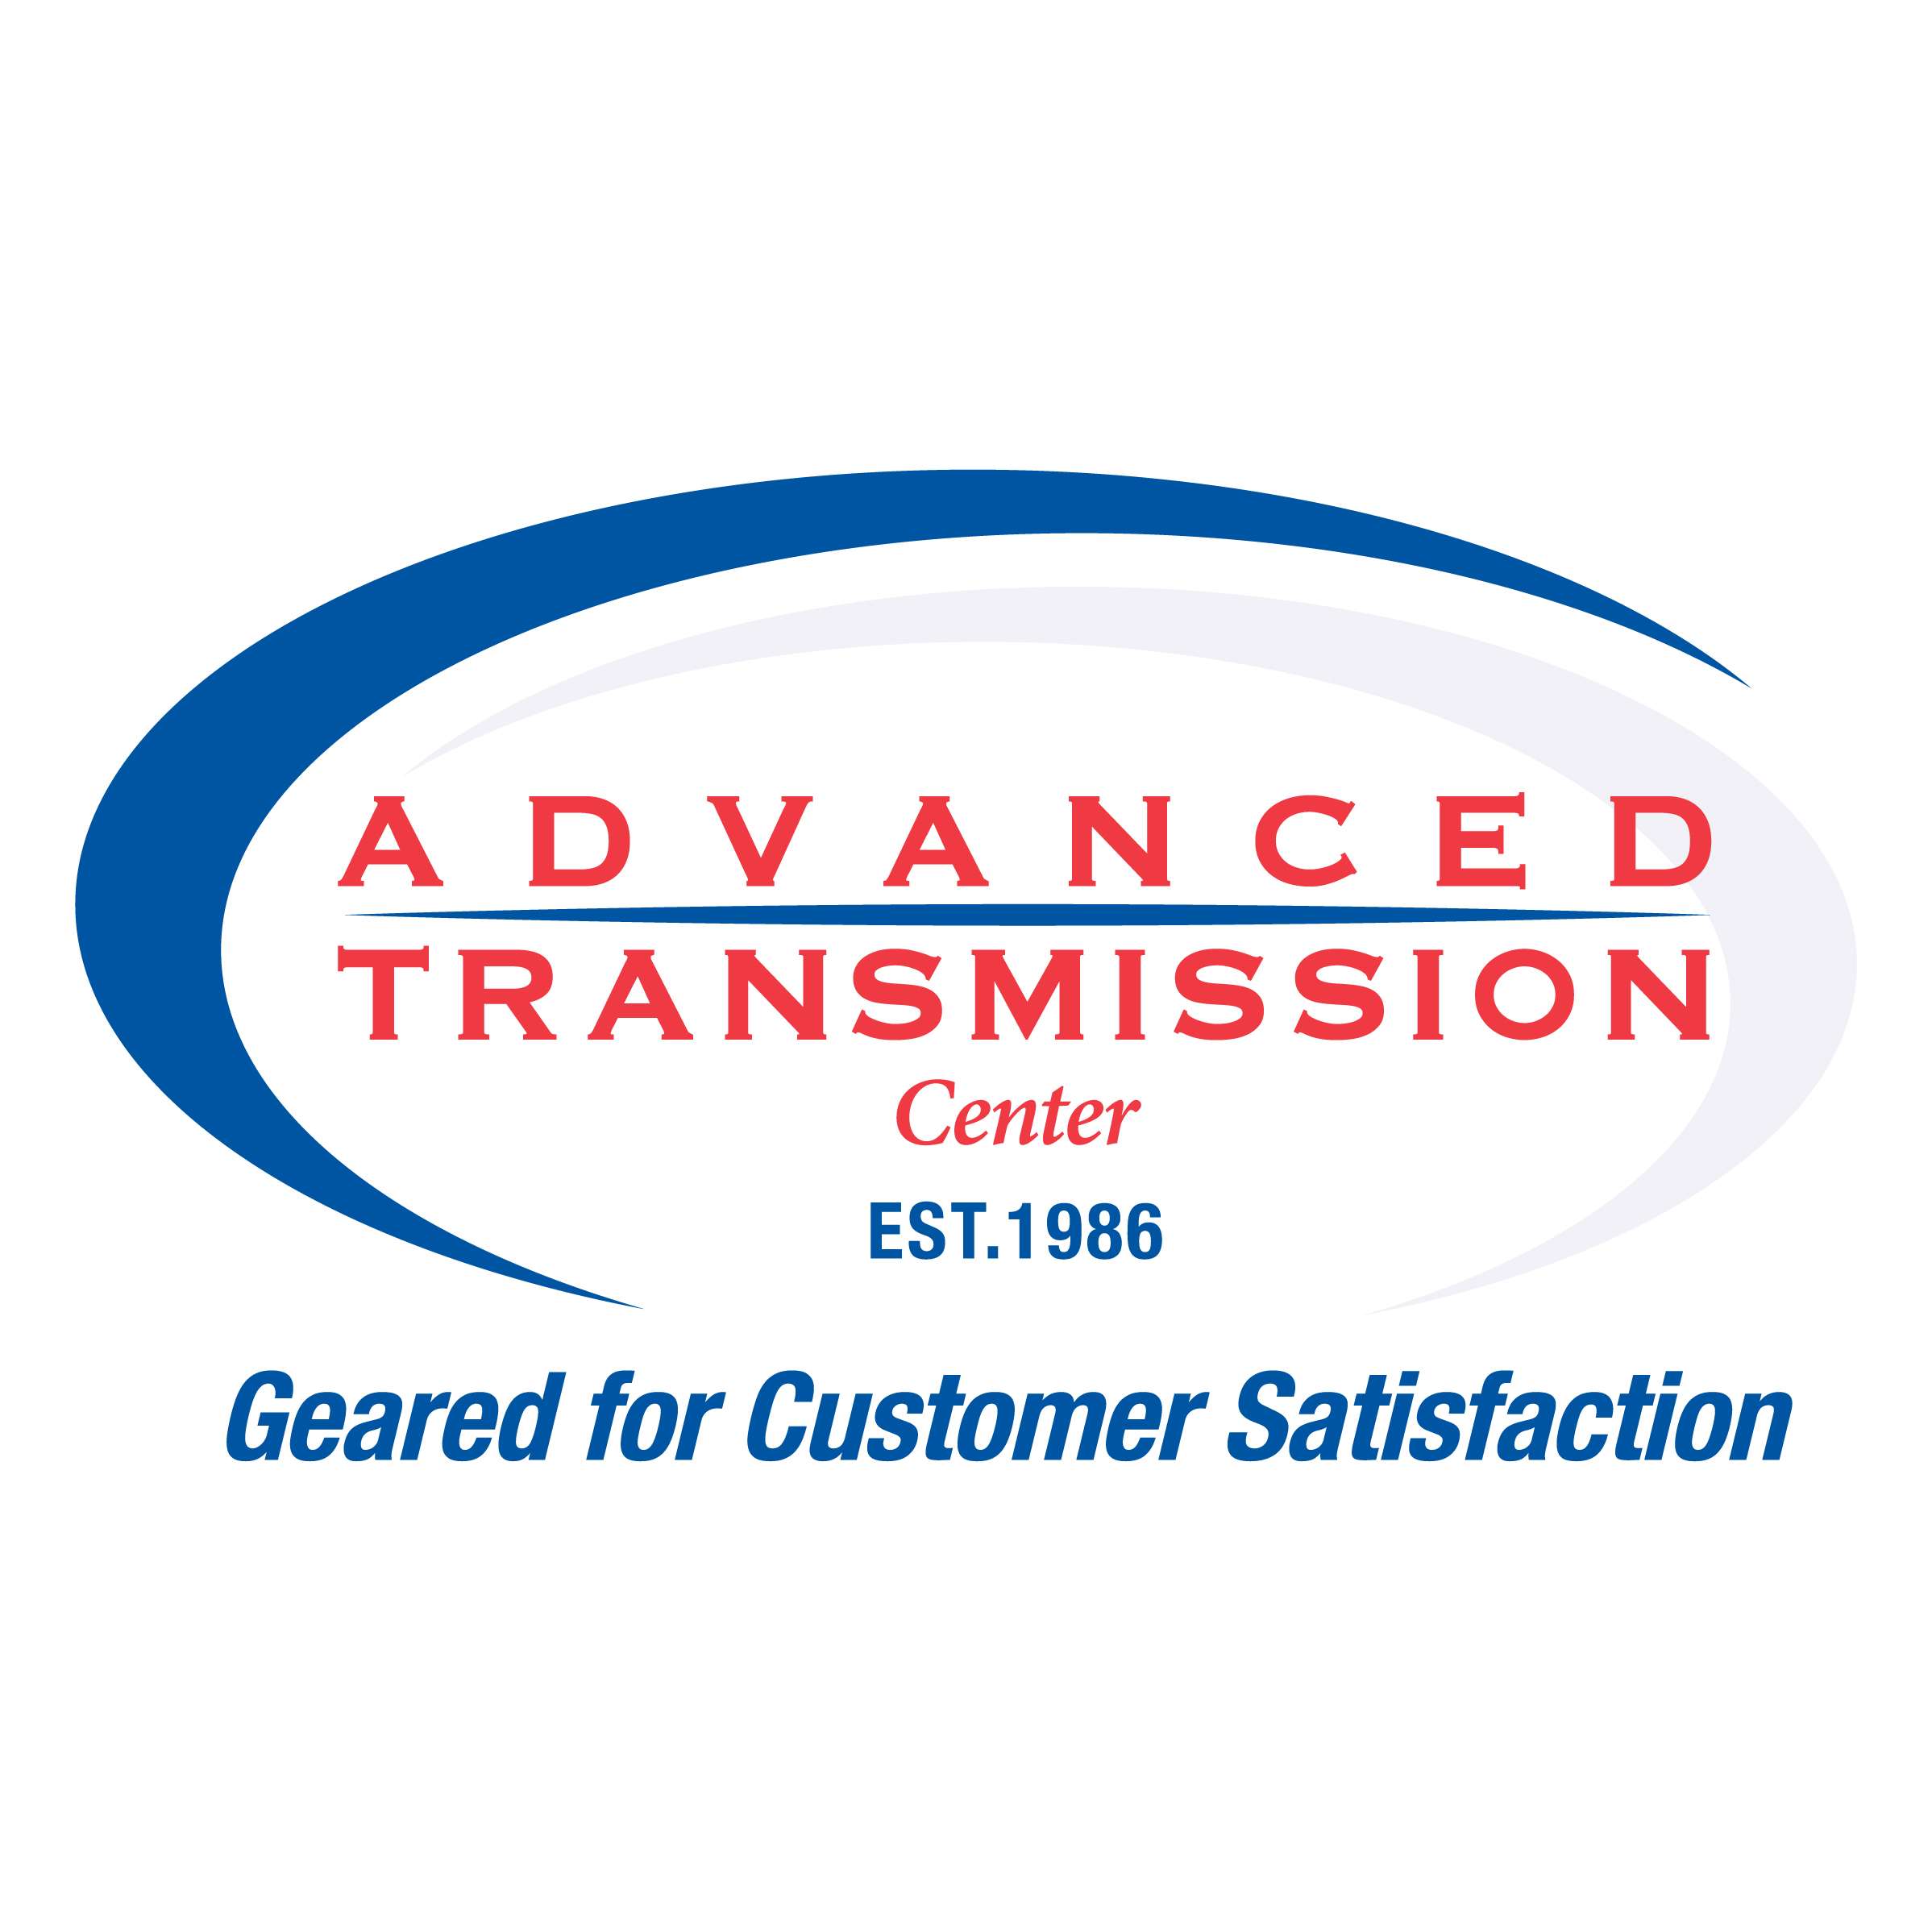 Advanced Transmission Center logo